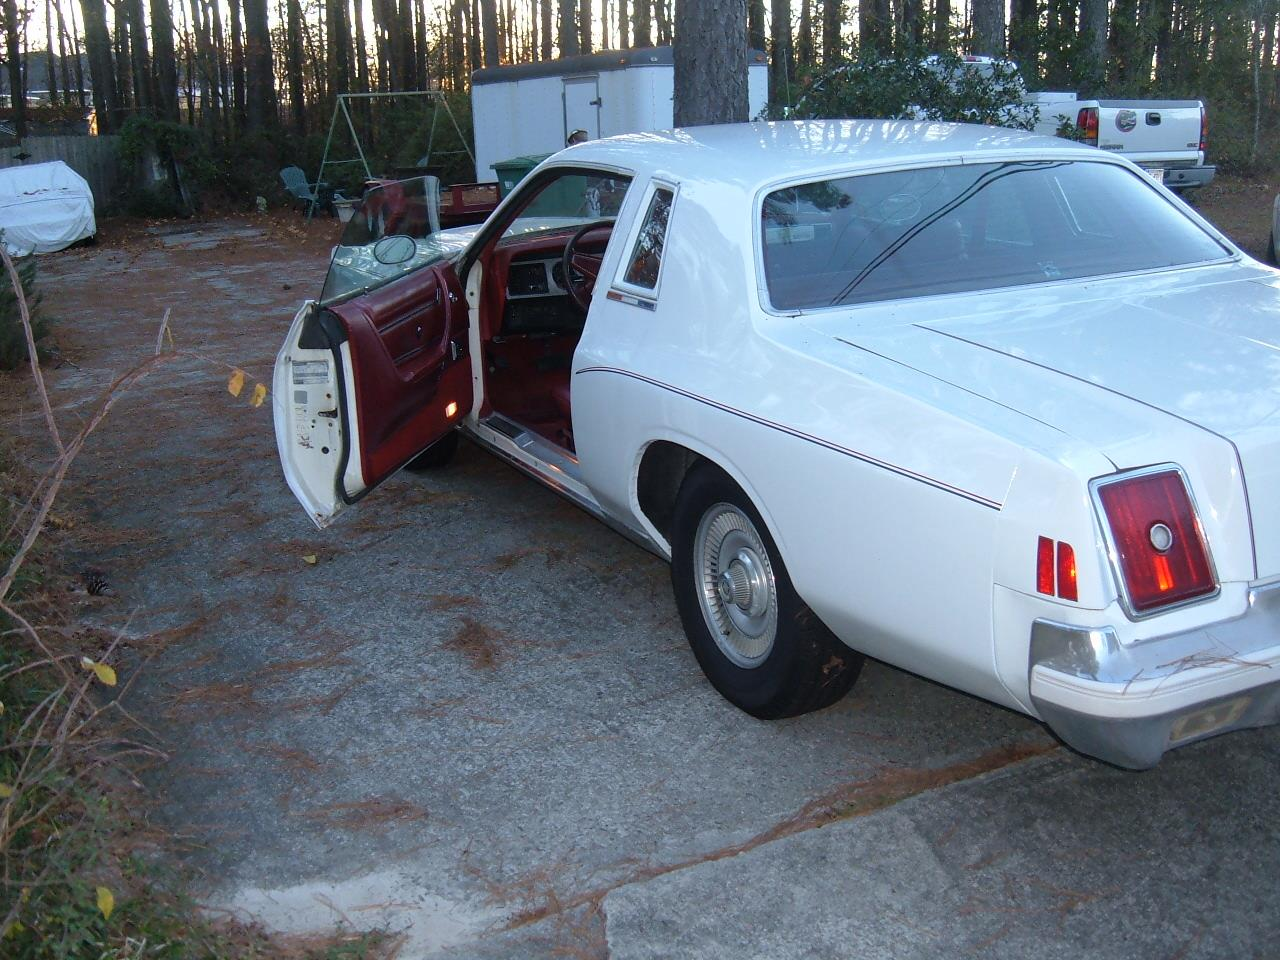 Large Picture of 1979 Chrysler 300 located in Grovetown Georgia - $4,500.00 Offered by a Private Seller - C2IN